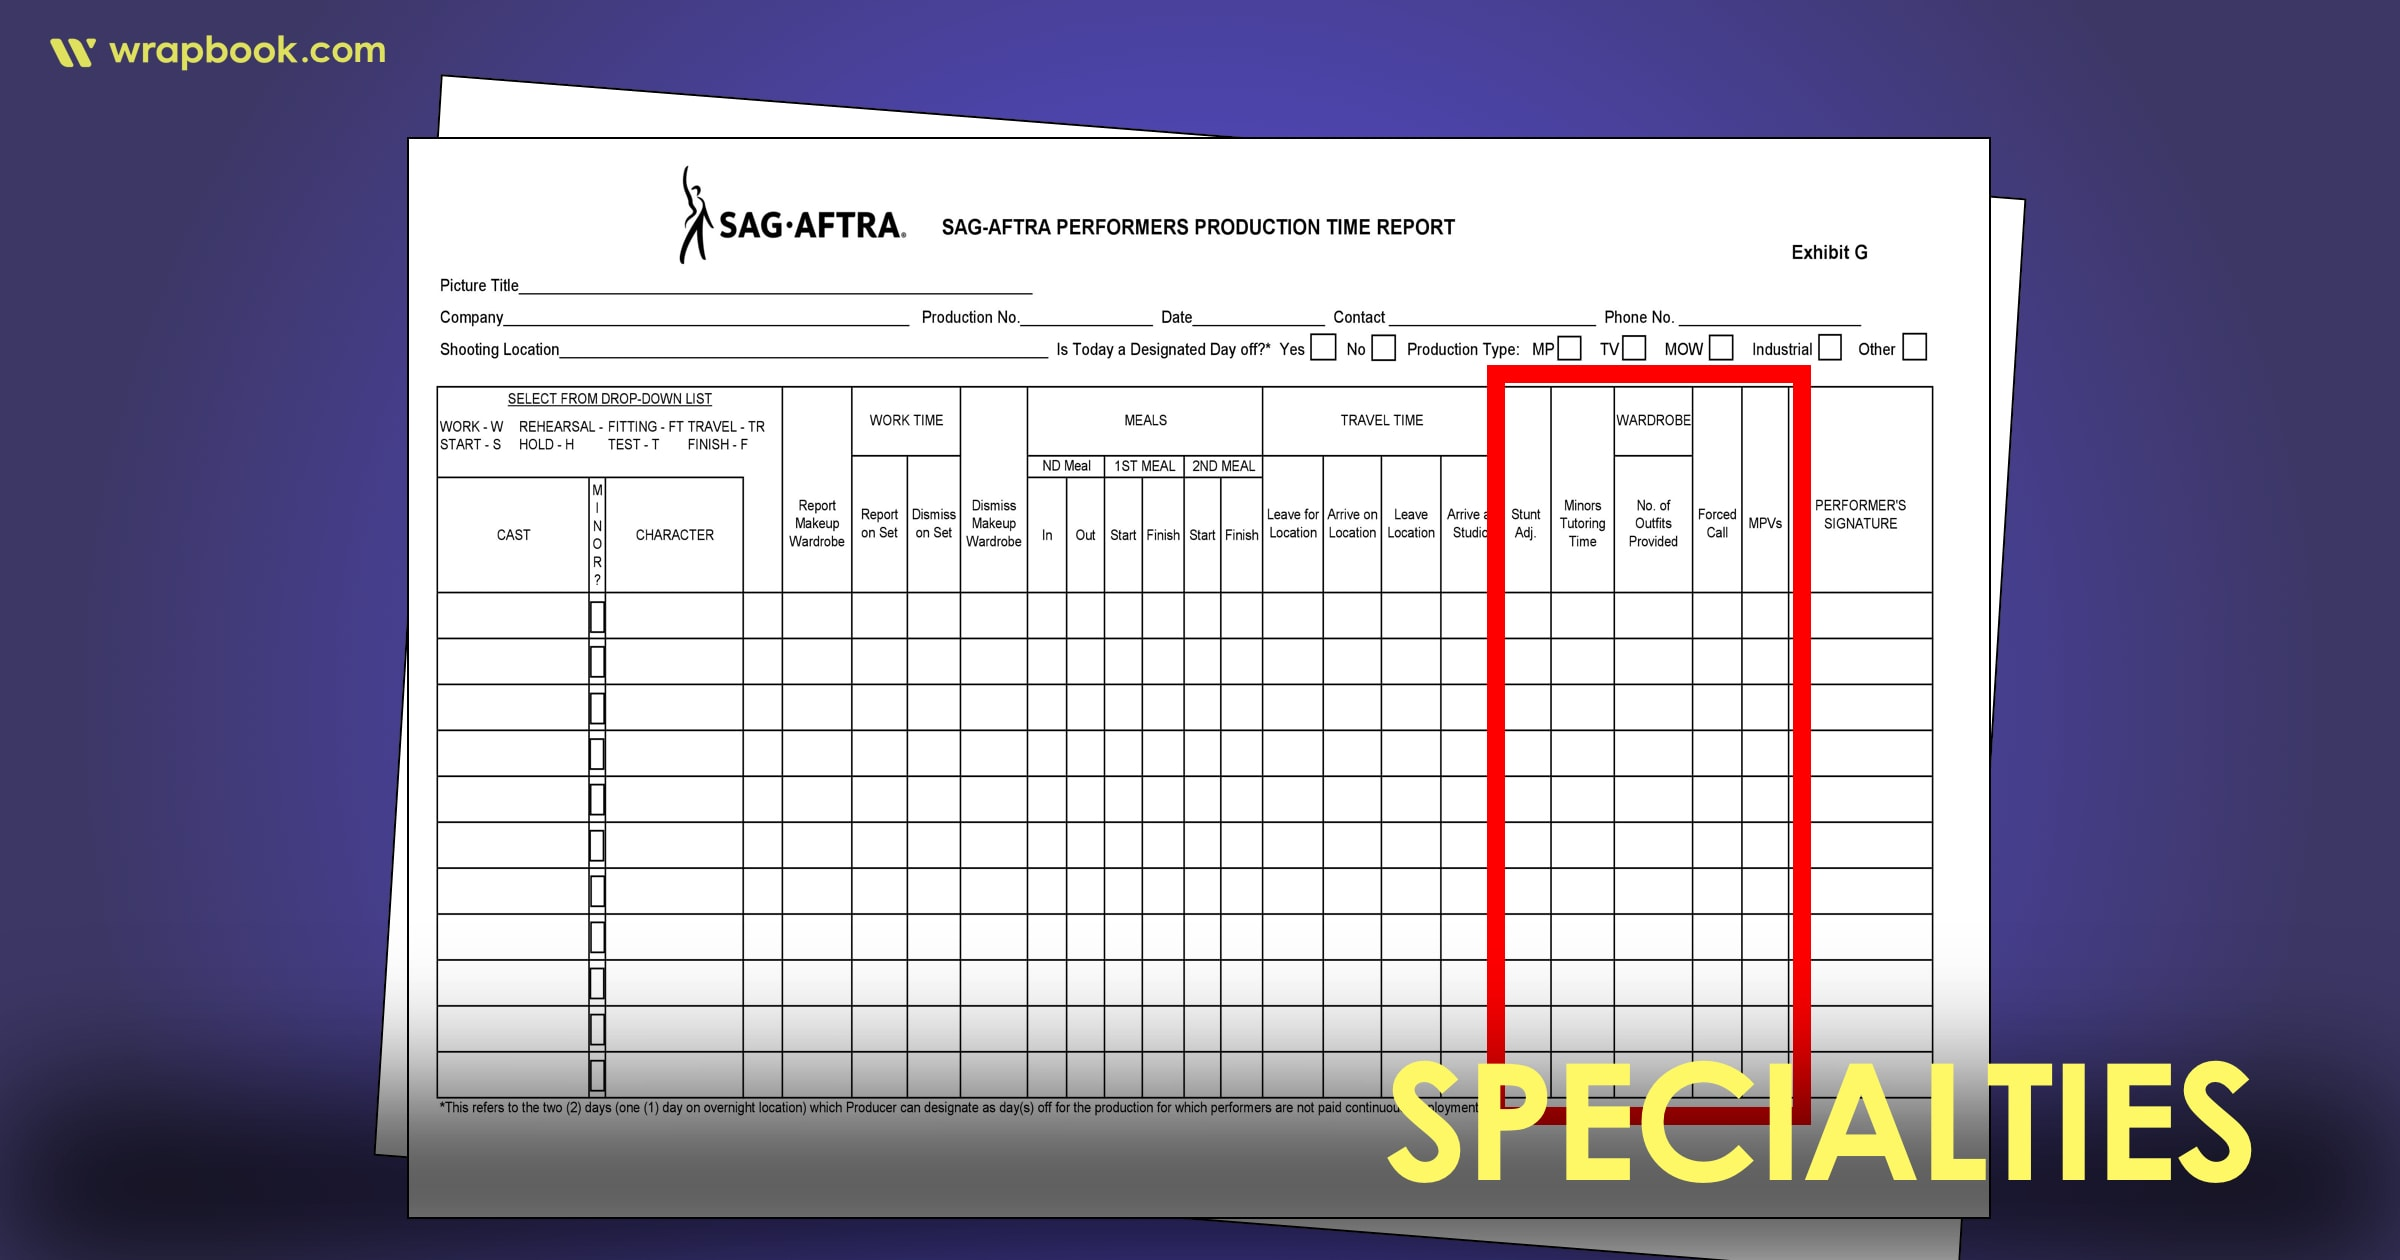 Specialties - How to Fill Out The SAG Exhibit G Form